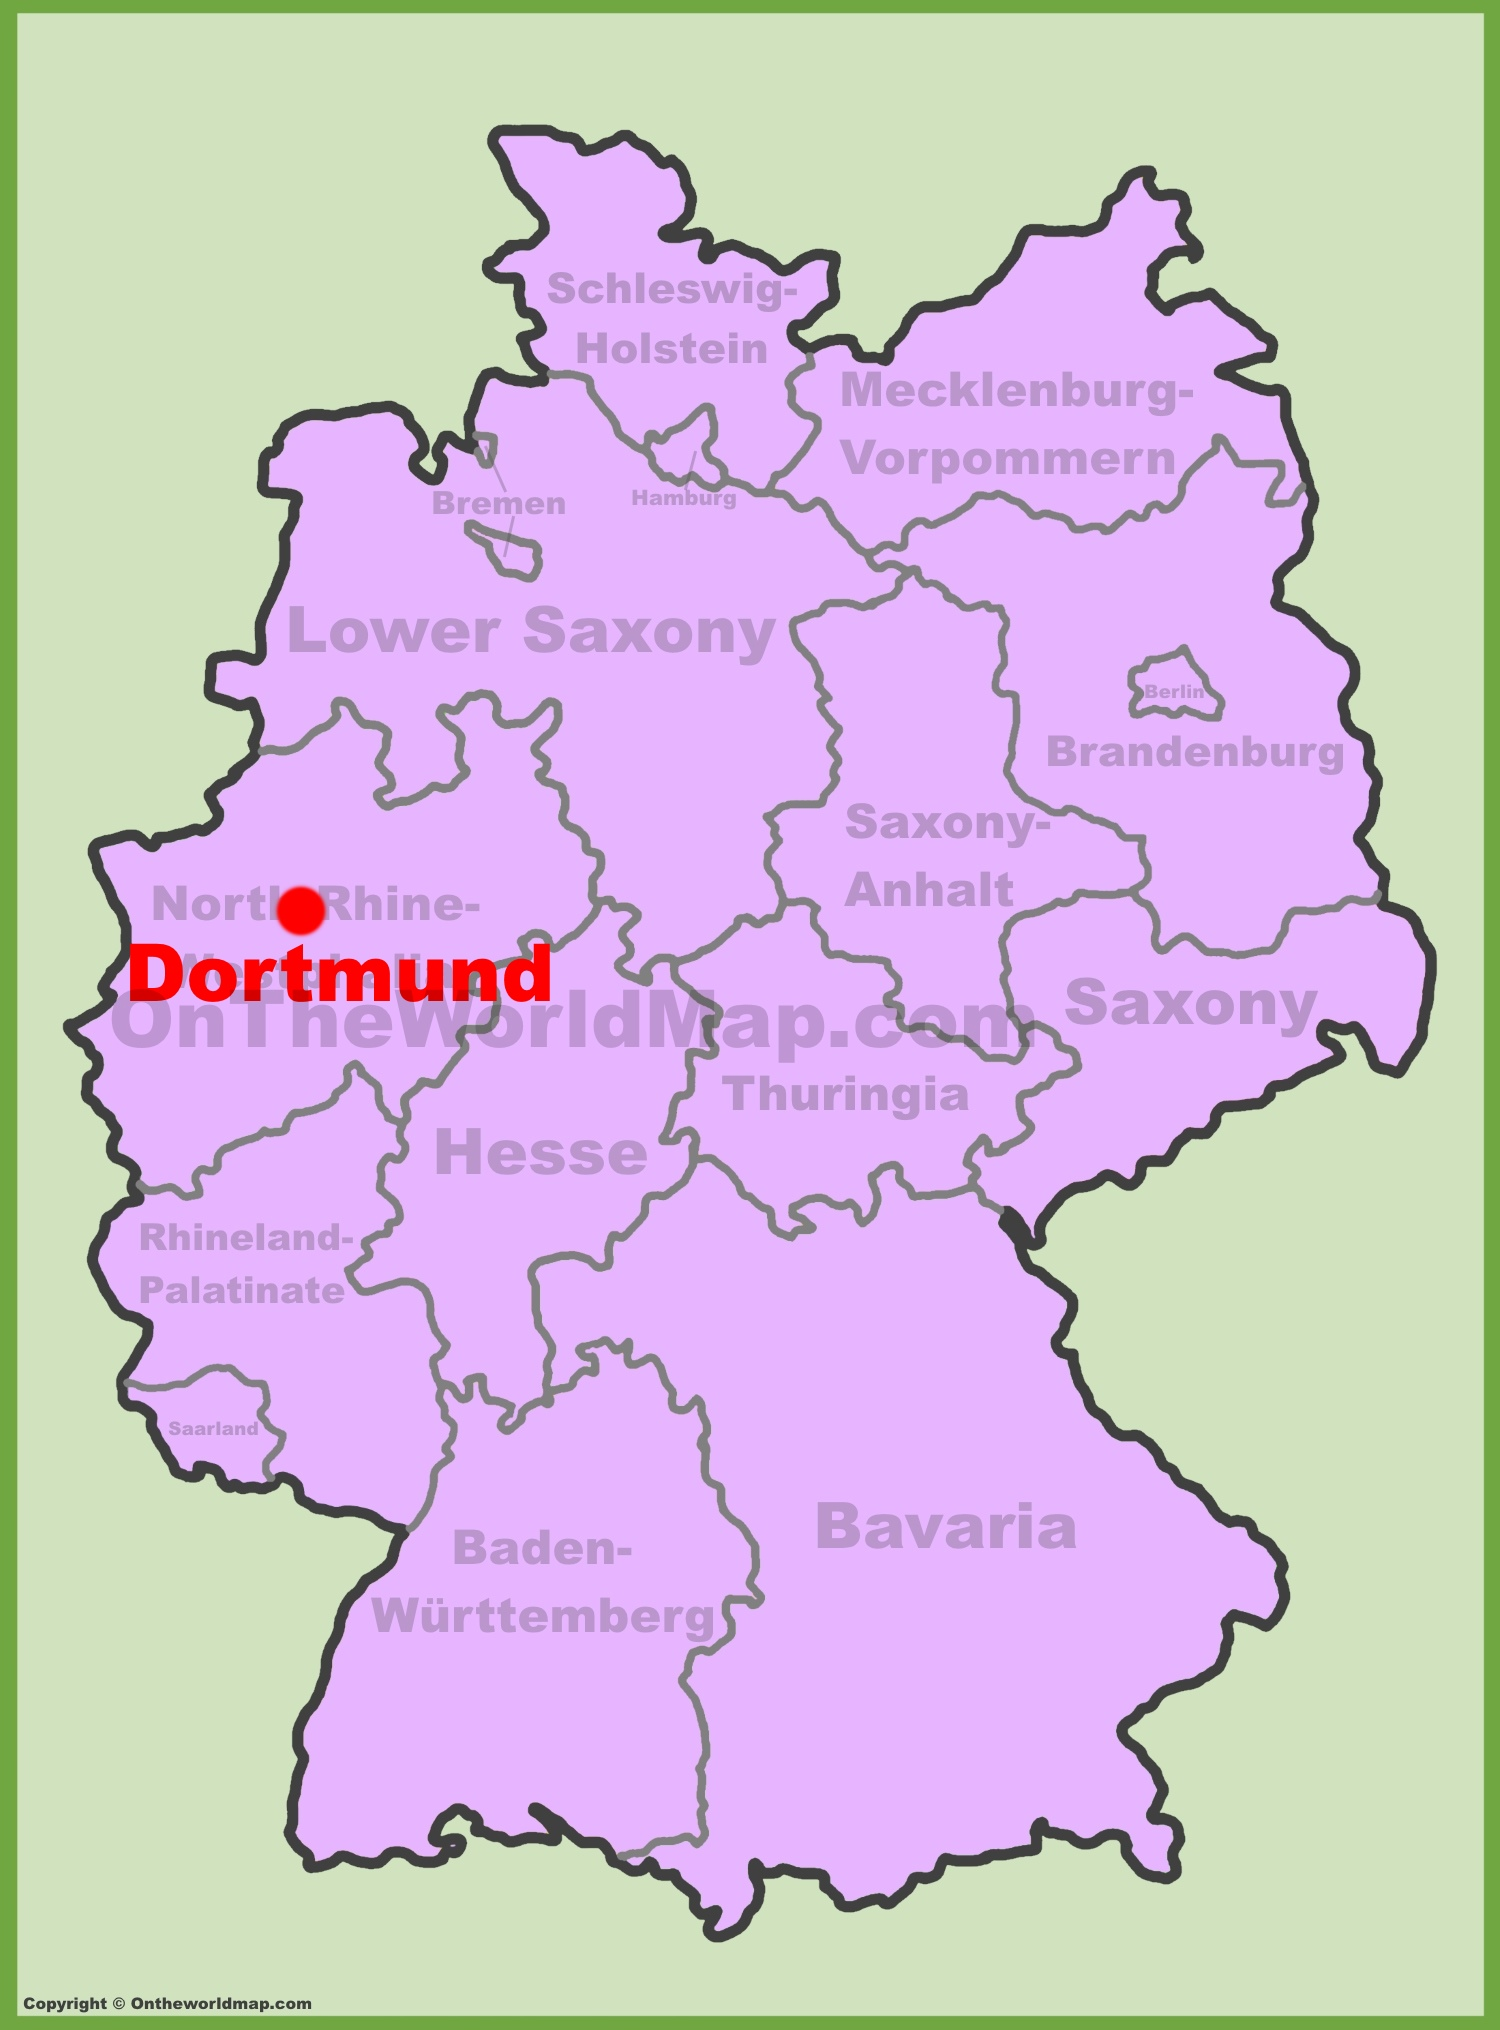 Dortmund Germany Map Dortmund location on the Germany map